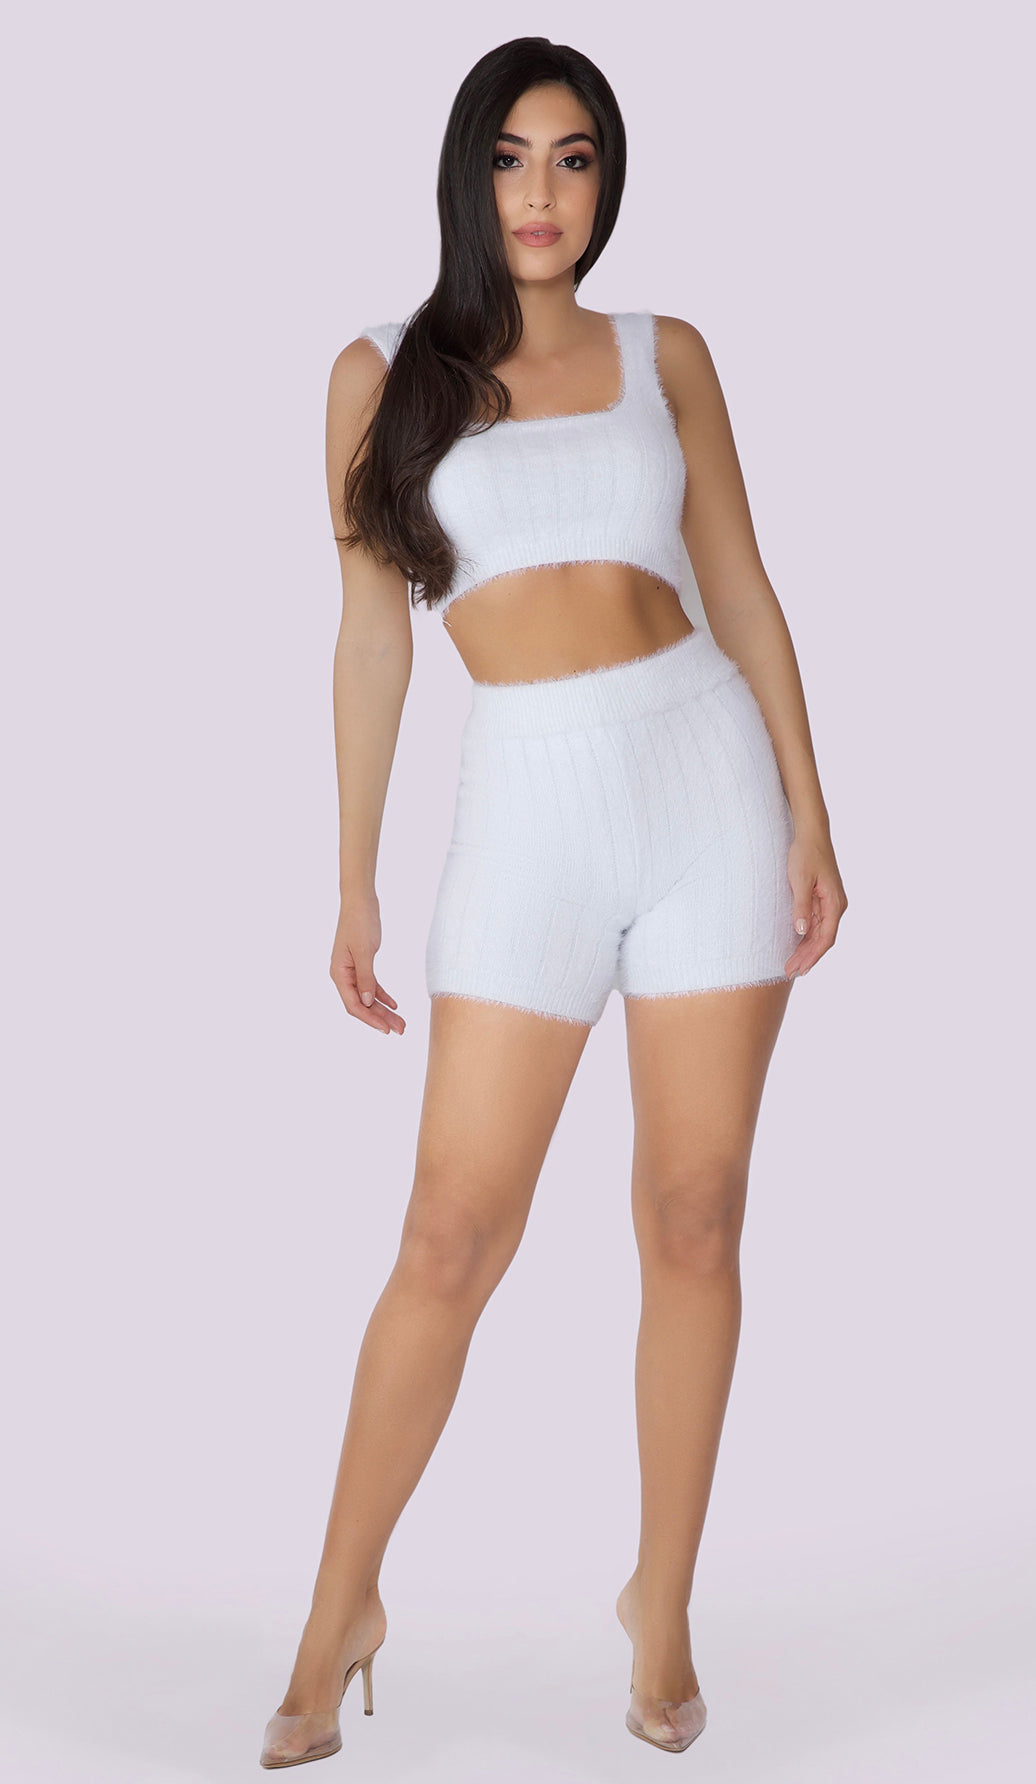 SIMA Fluffy Knit Crop Top - White